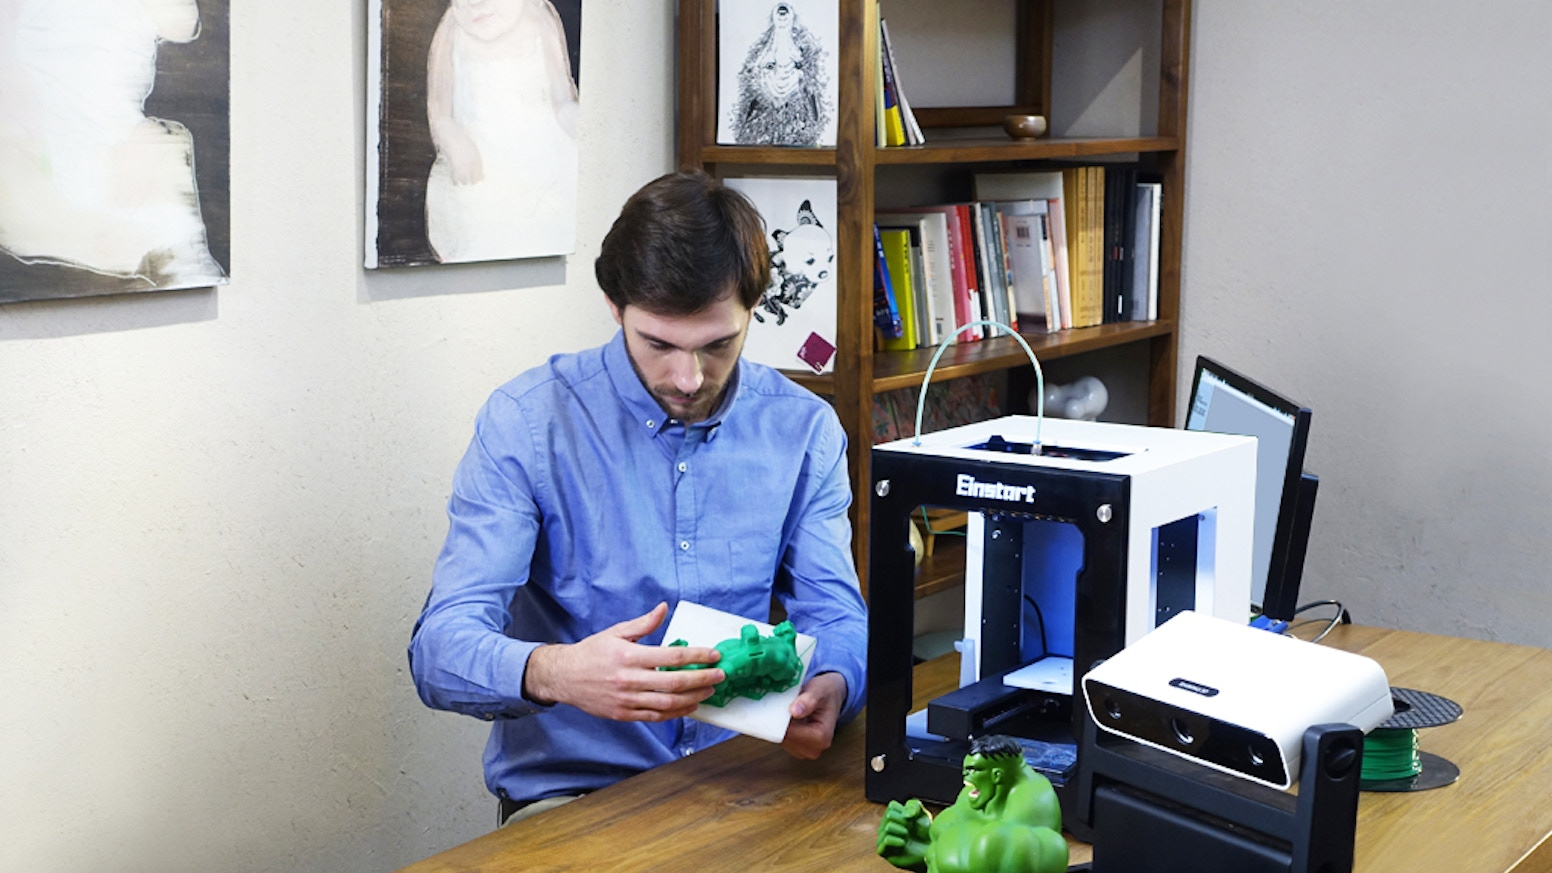 EinScan-S: The world's first white light desktop 3D Scanner. Fast, accurate, safe 3d scanner for creative 3D printing applications.